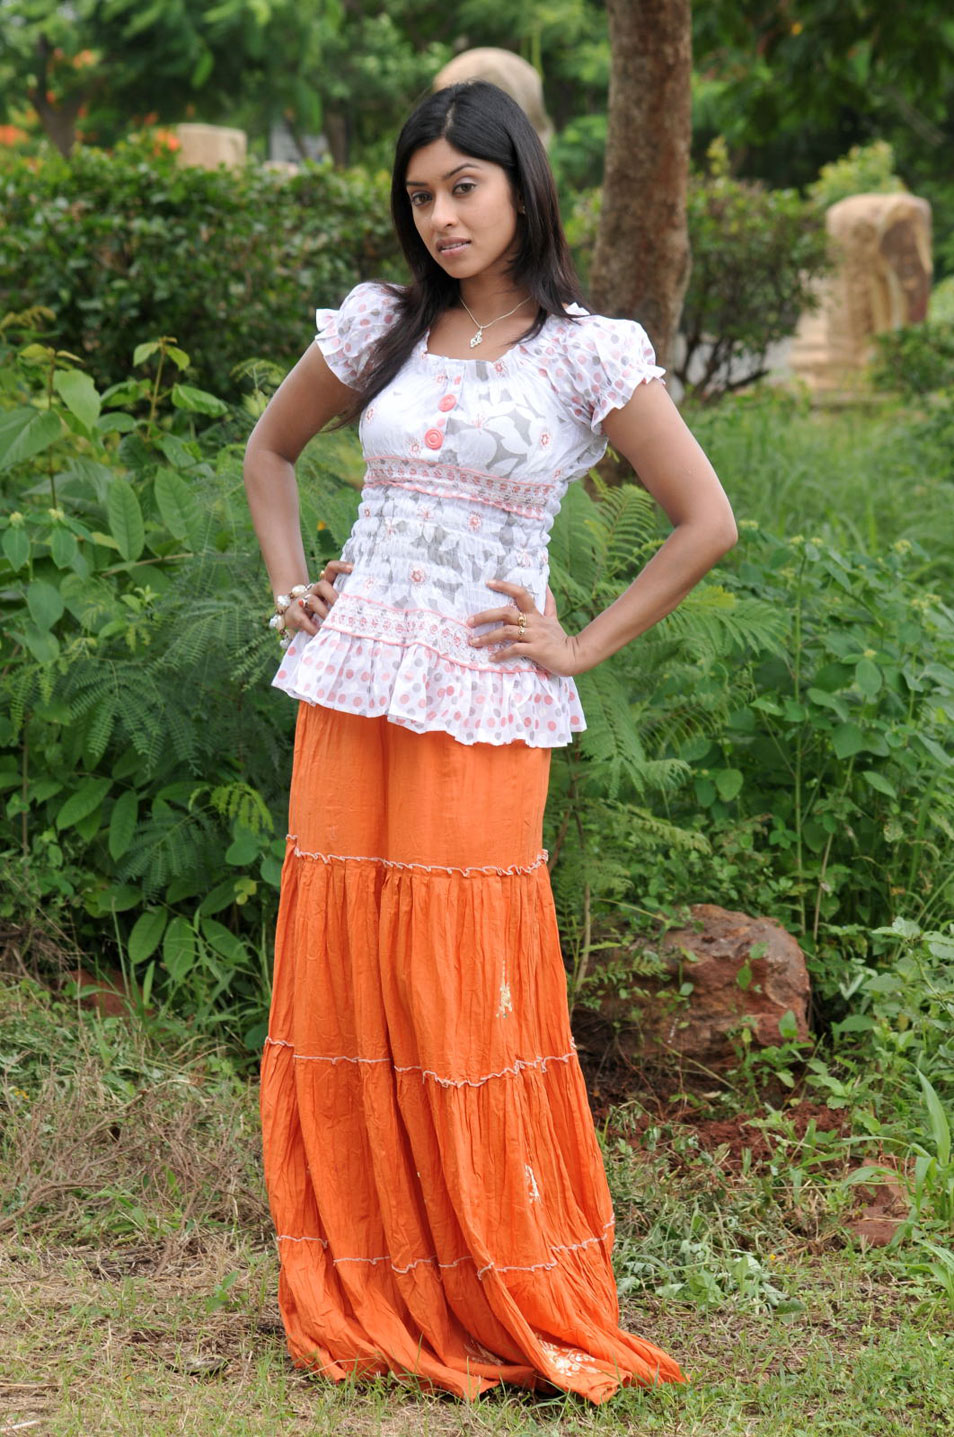 Payal Gosh1 - Telugu Actress Payal Gosh Wallpapers